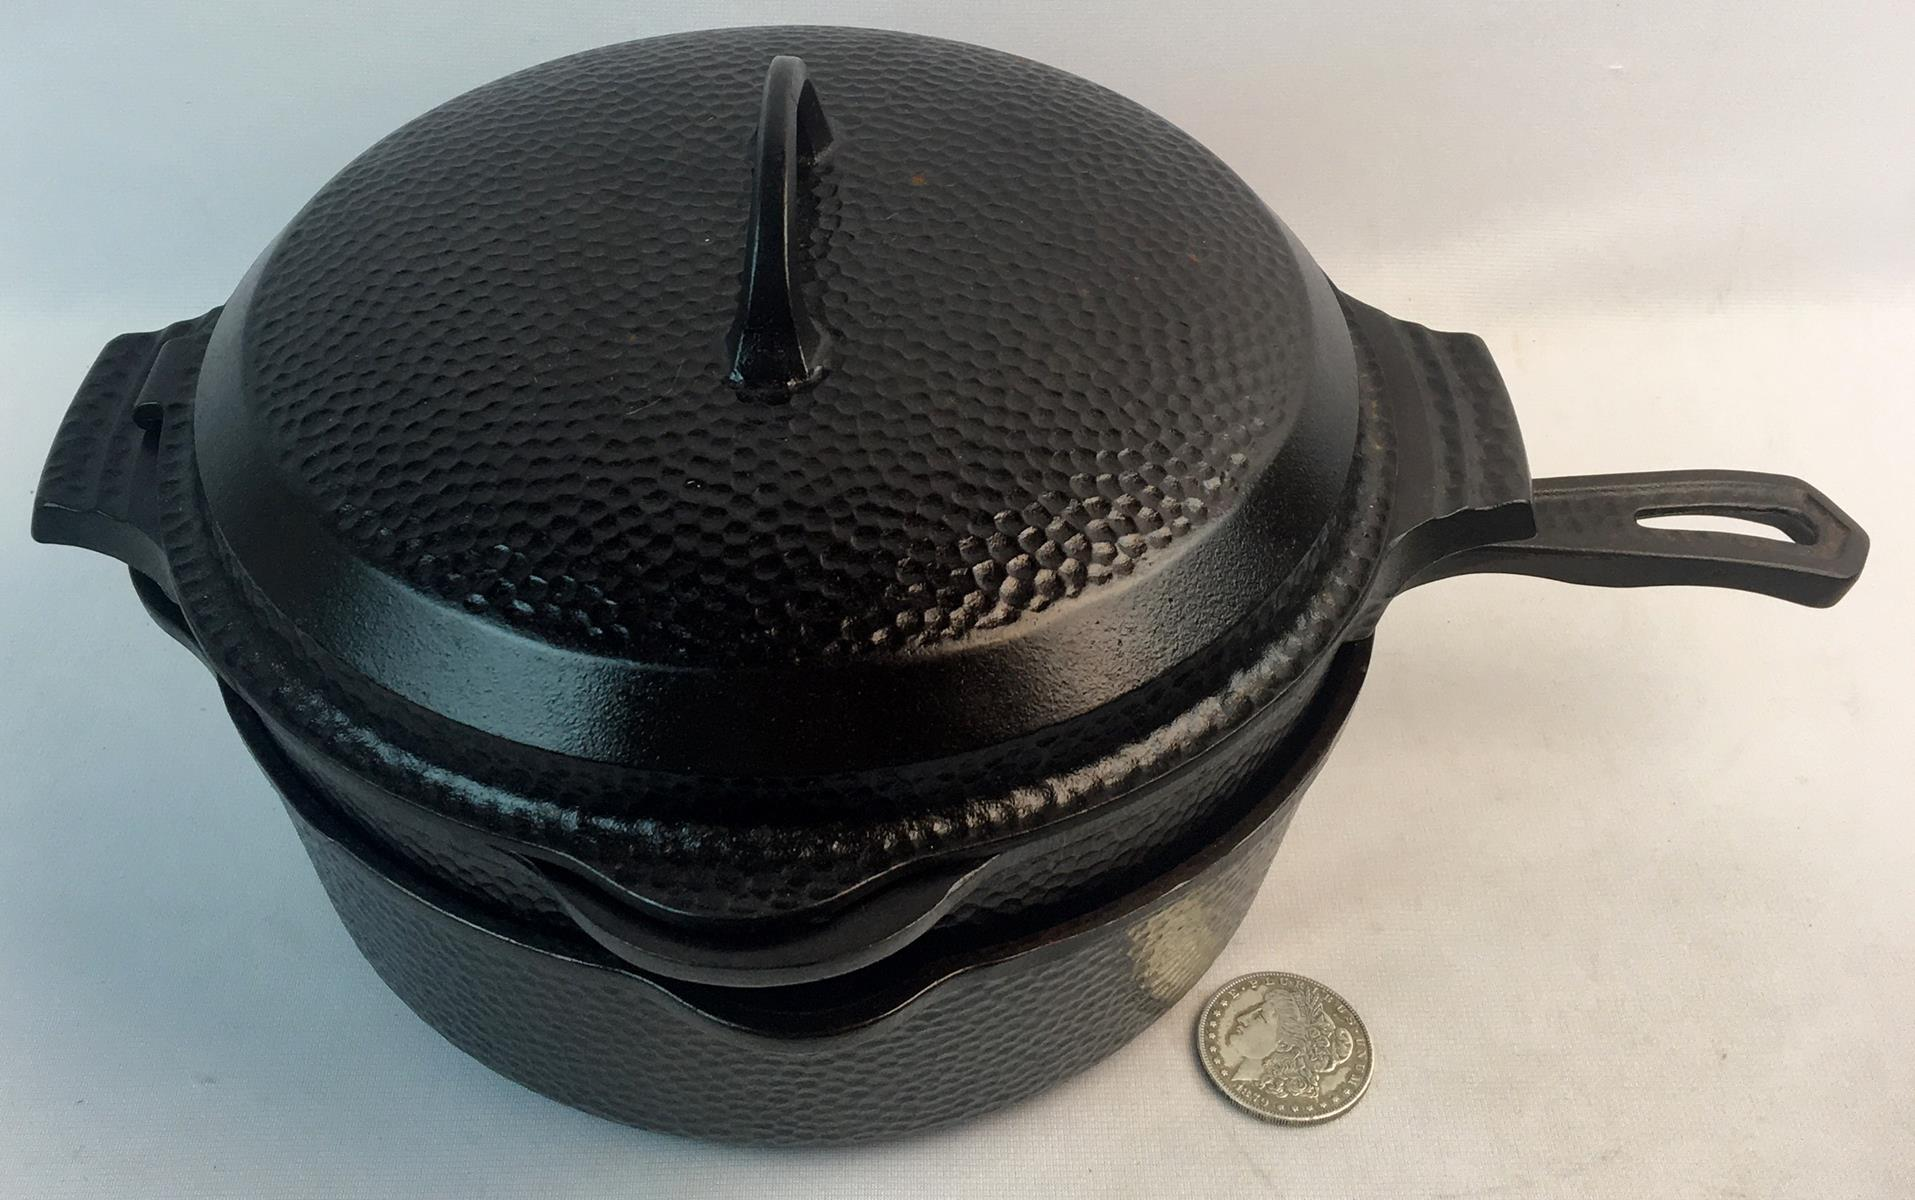 VERY RARE Antique Griswold No. 2058 Hinged Hammered Dutch Oven and Fryer Set w/ Trivet